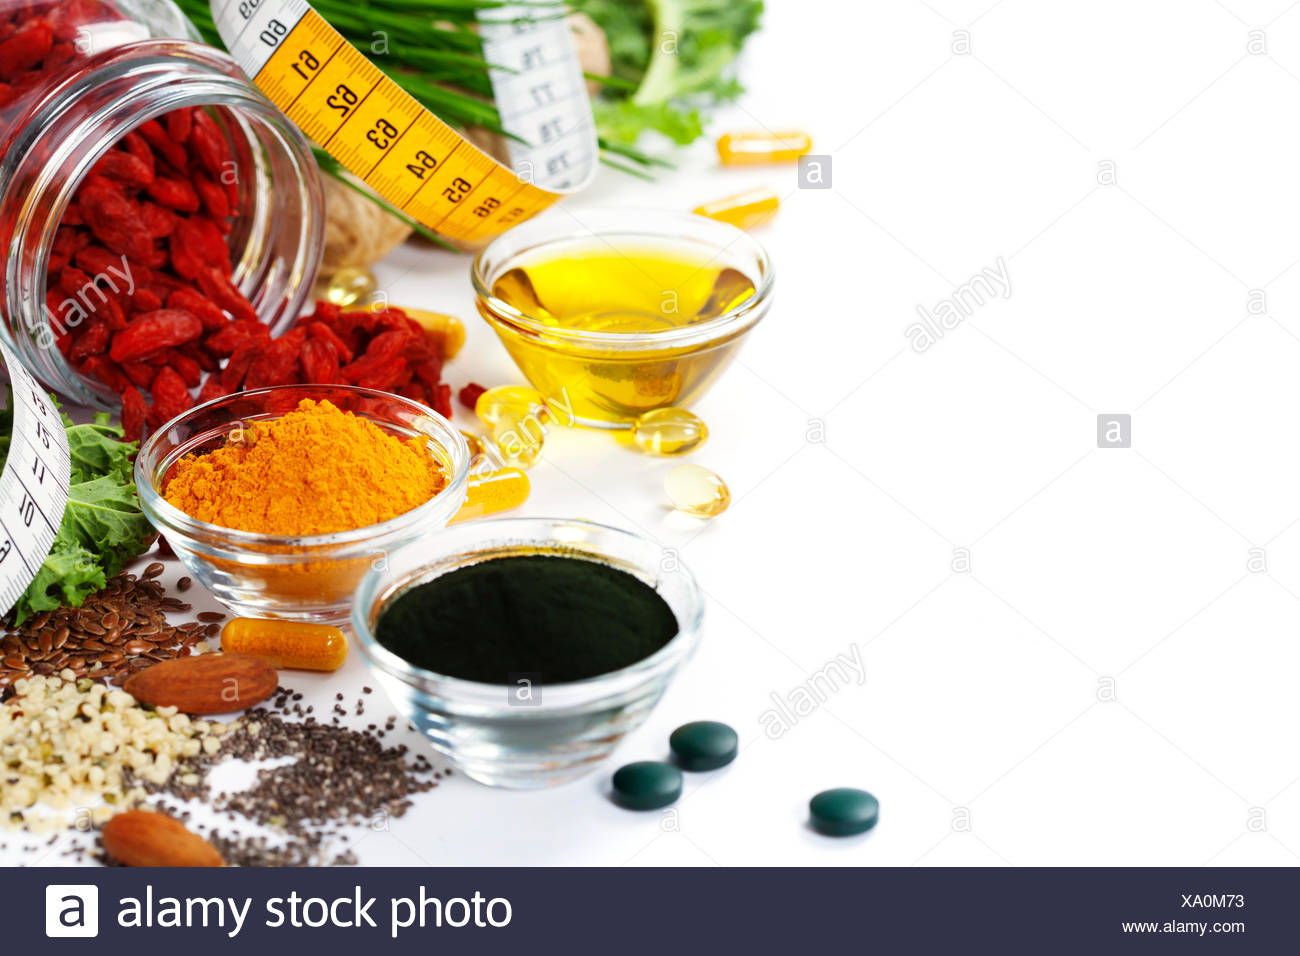 Alternative natural medicine. Dietary supplements. Spirulina, turmeric  and organic oil on white background. Superfood, detox or - Stock Image